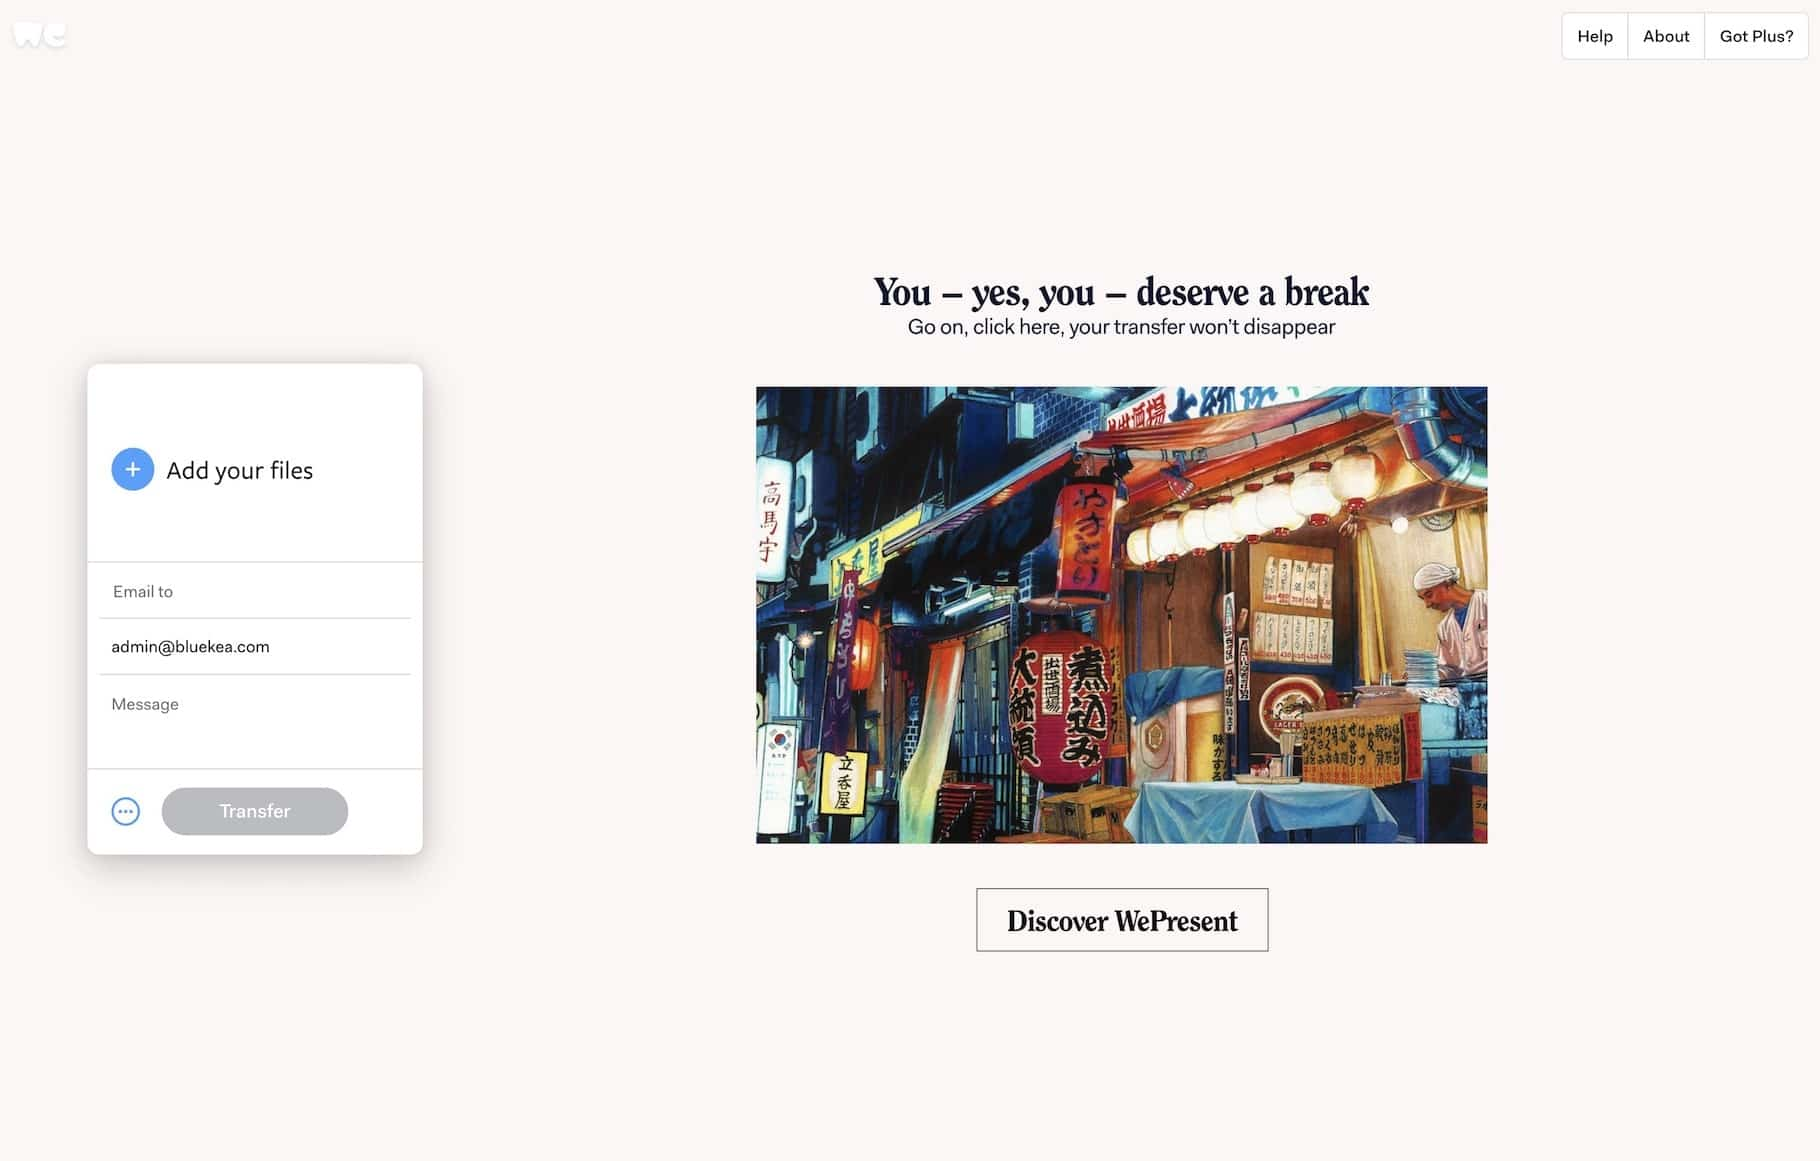 Enviar fotos de forma privada con WeTransfer